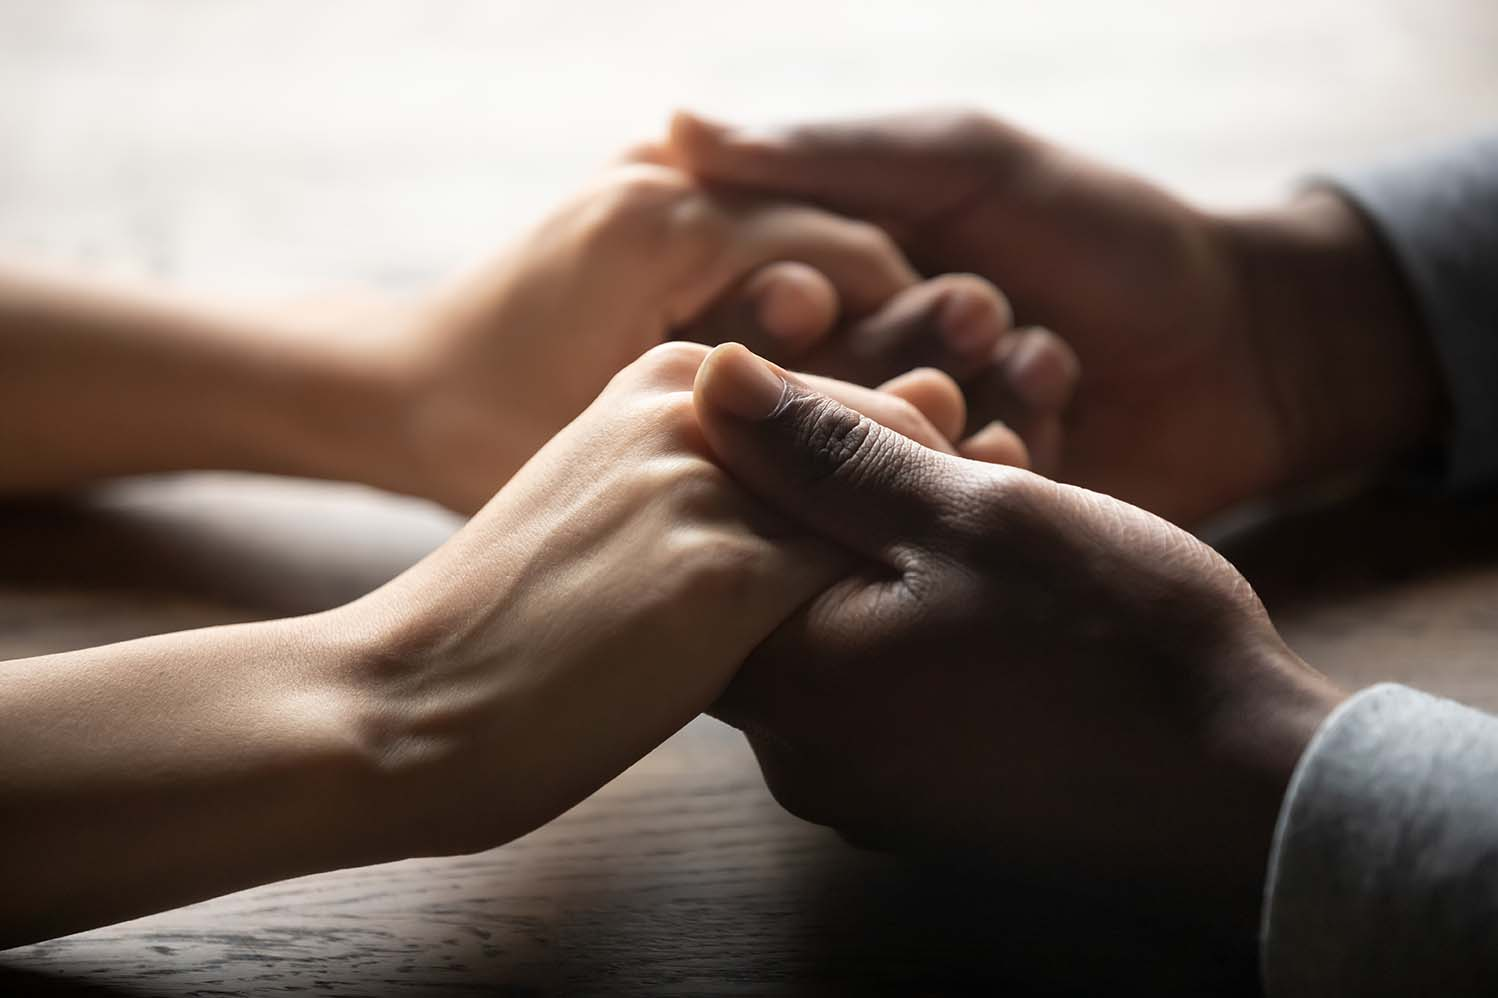 Mixed race couple holding hands on table